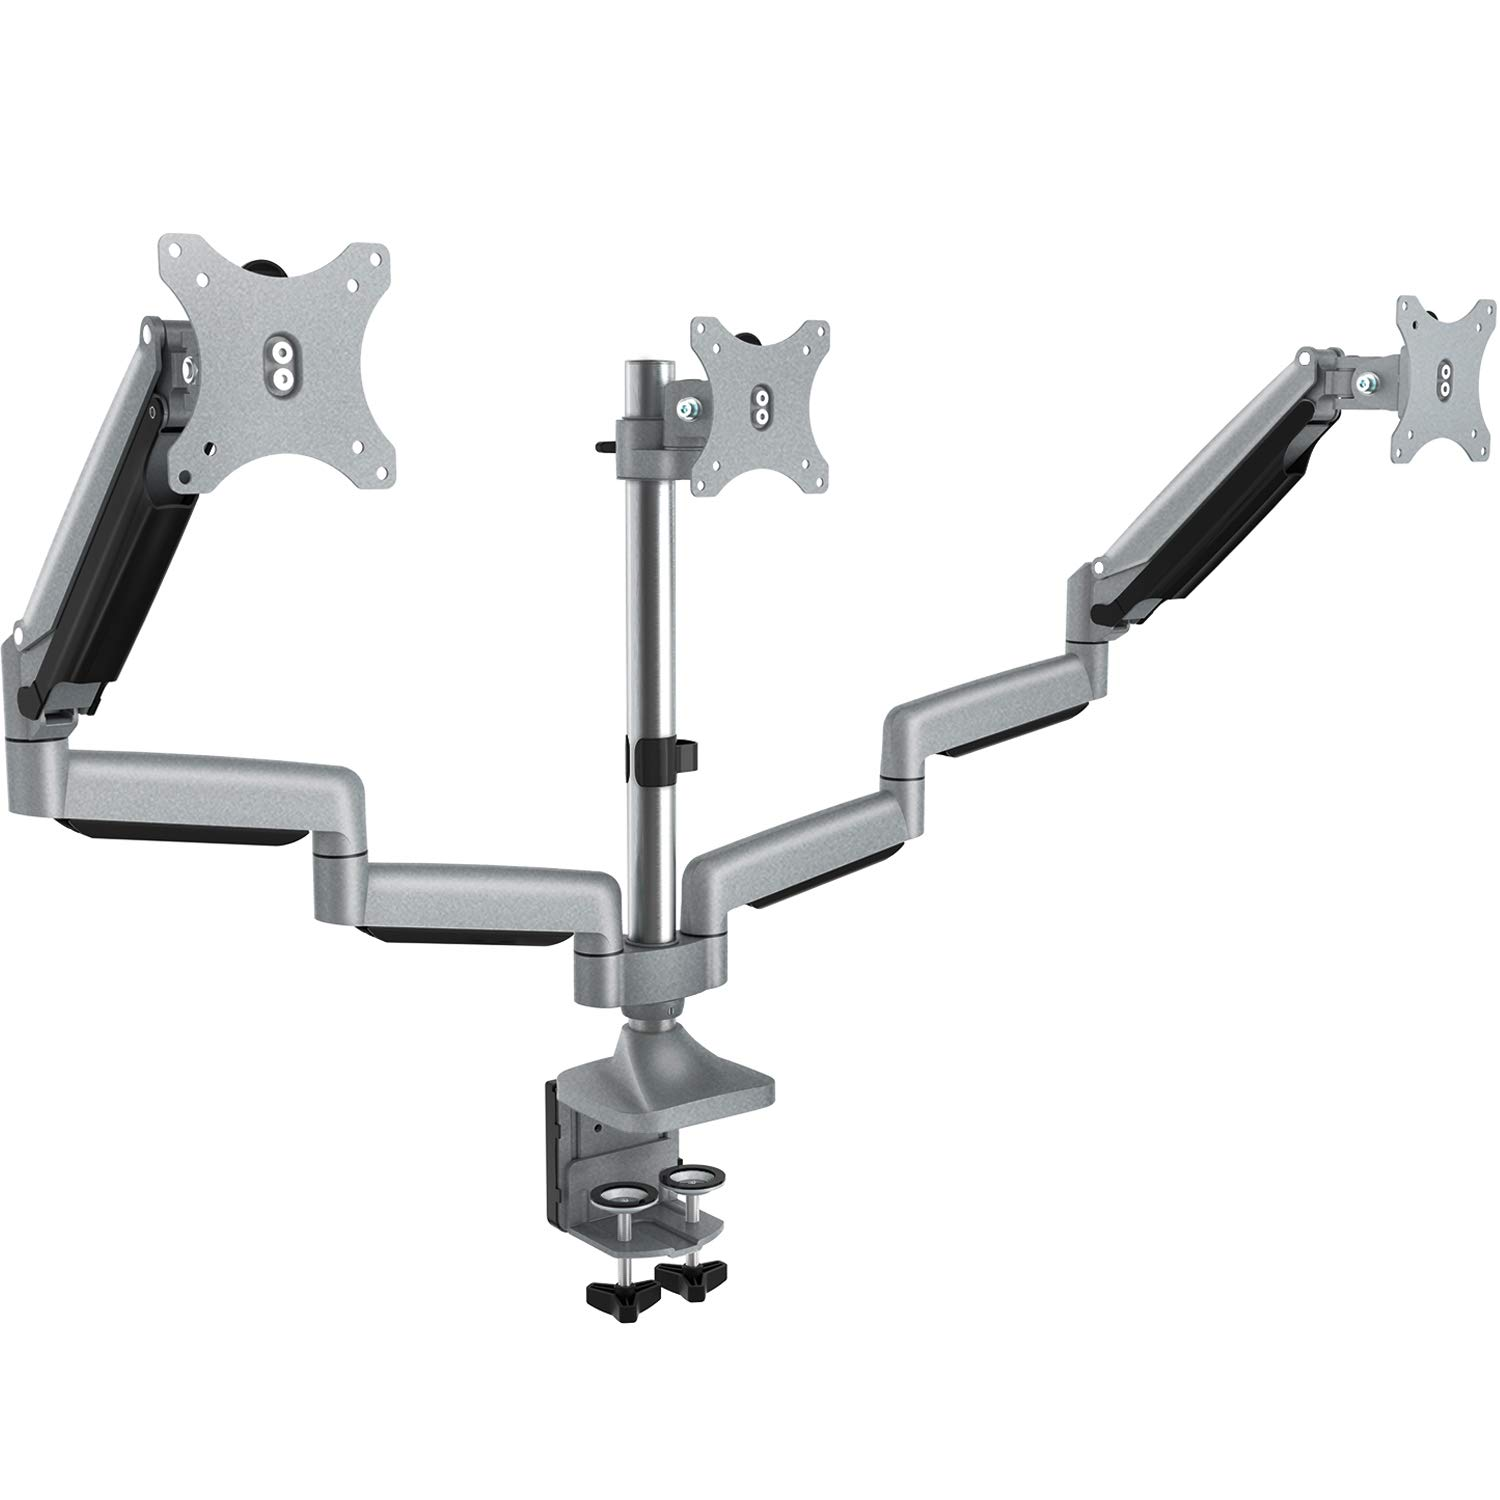 Triple Monitor Stand - Adjustable 3 Arm Gas Spring Computer Desk Mount, Aluminum Full Motion Articulating with Clamp, Grommet Mounting Base for 13-32 Inch LED LCD Displays